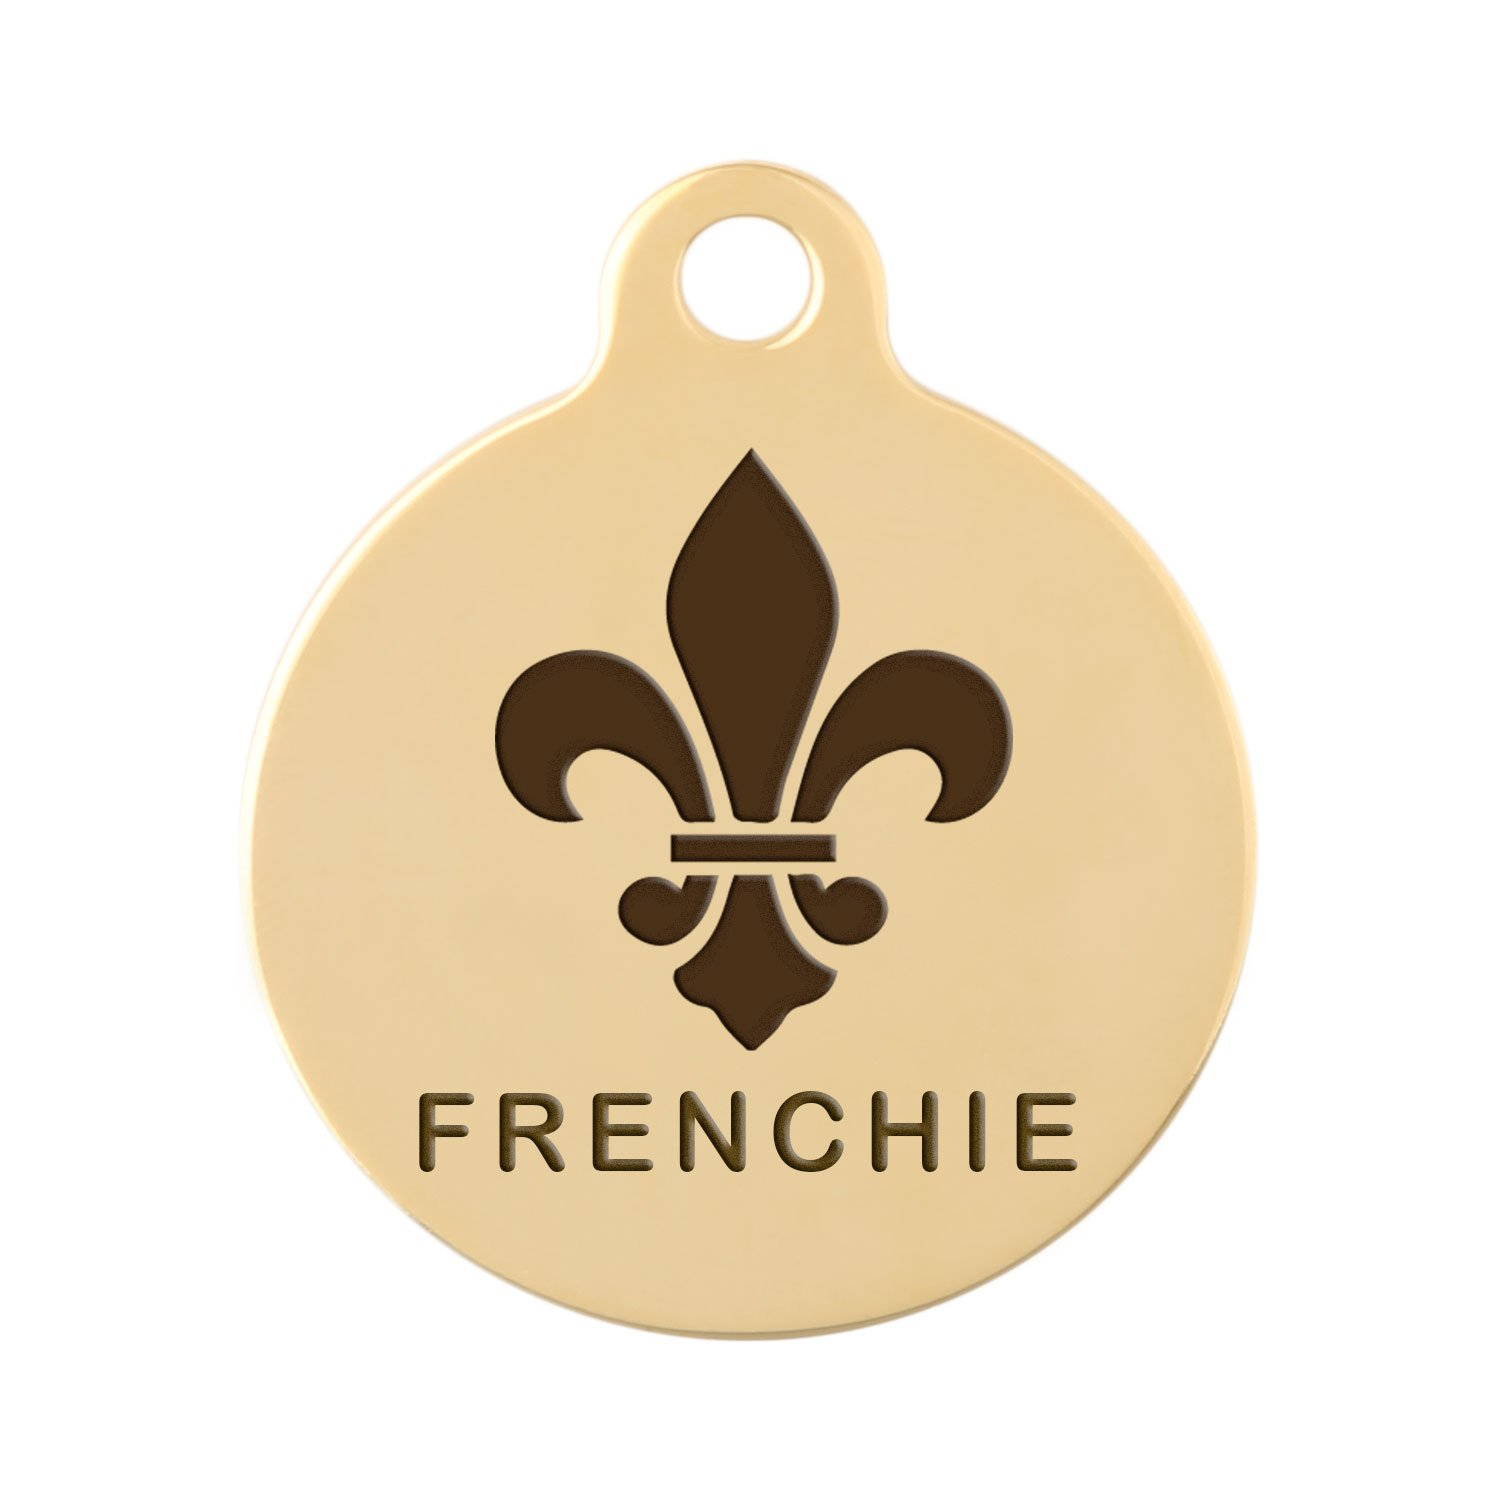 dogIDs Signature Engraved Fleur De Lis Dog ID Tag - Gold Plated Brass - 1.25 Inch Diameter